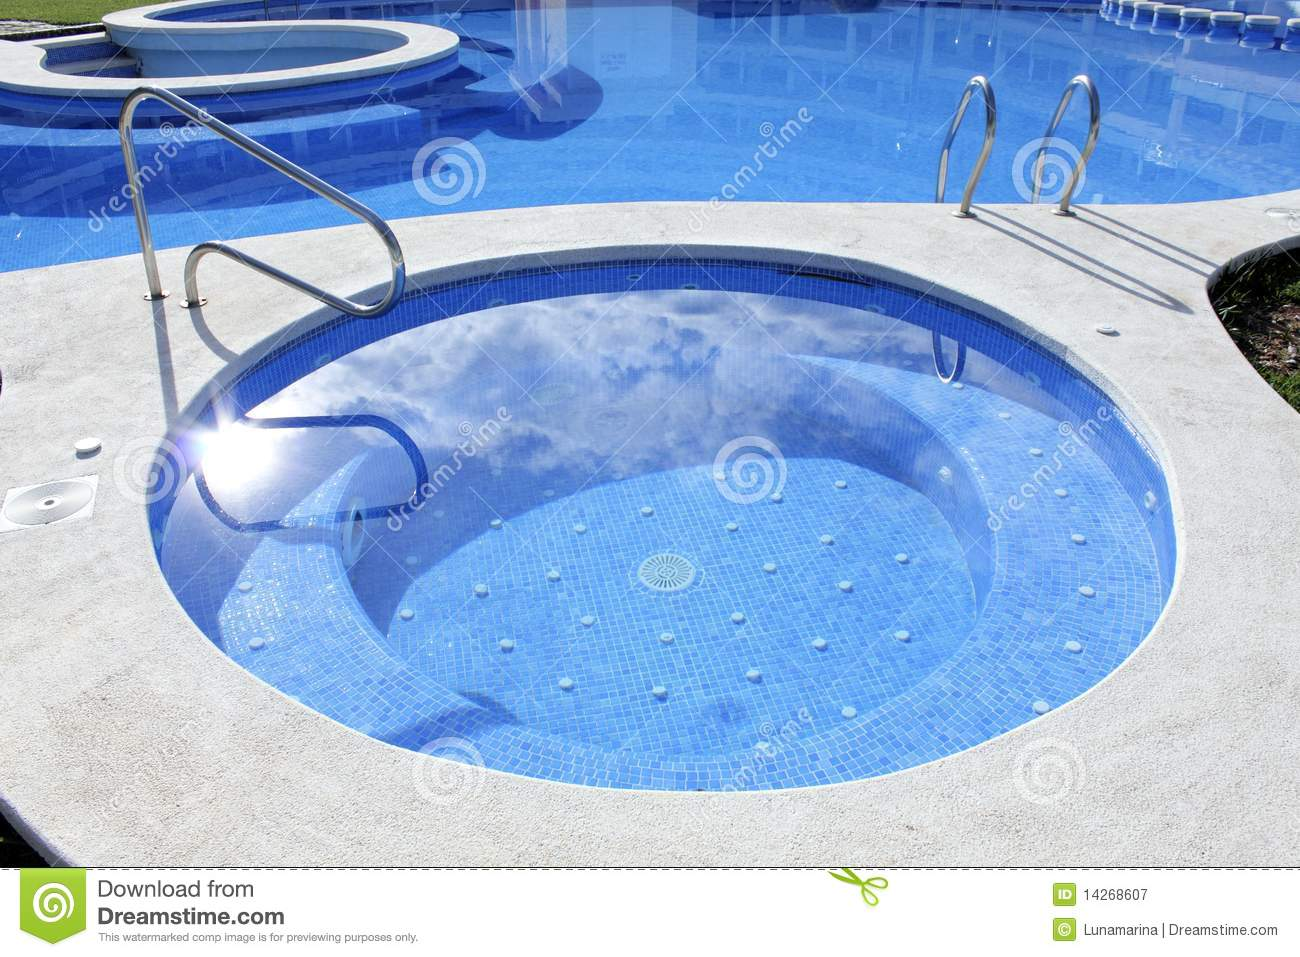 Jacuzzi outdoor blue swimming pool stock image image for Pool time pools